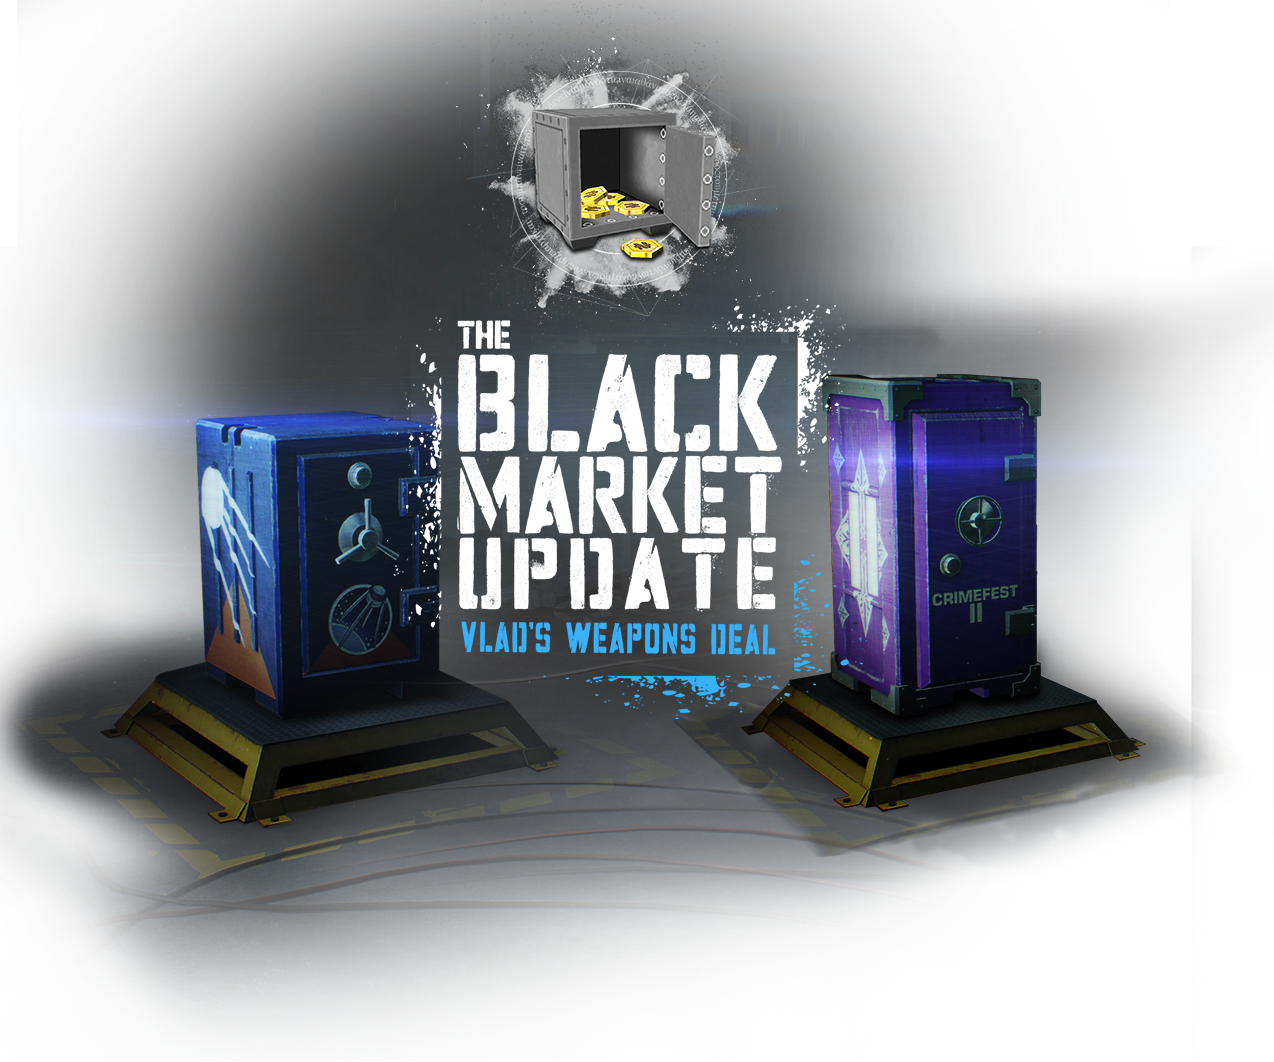 The Black Market Update